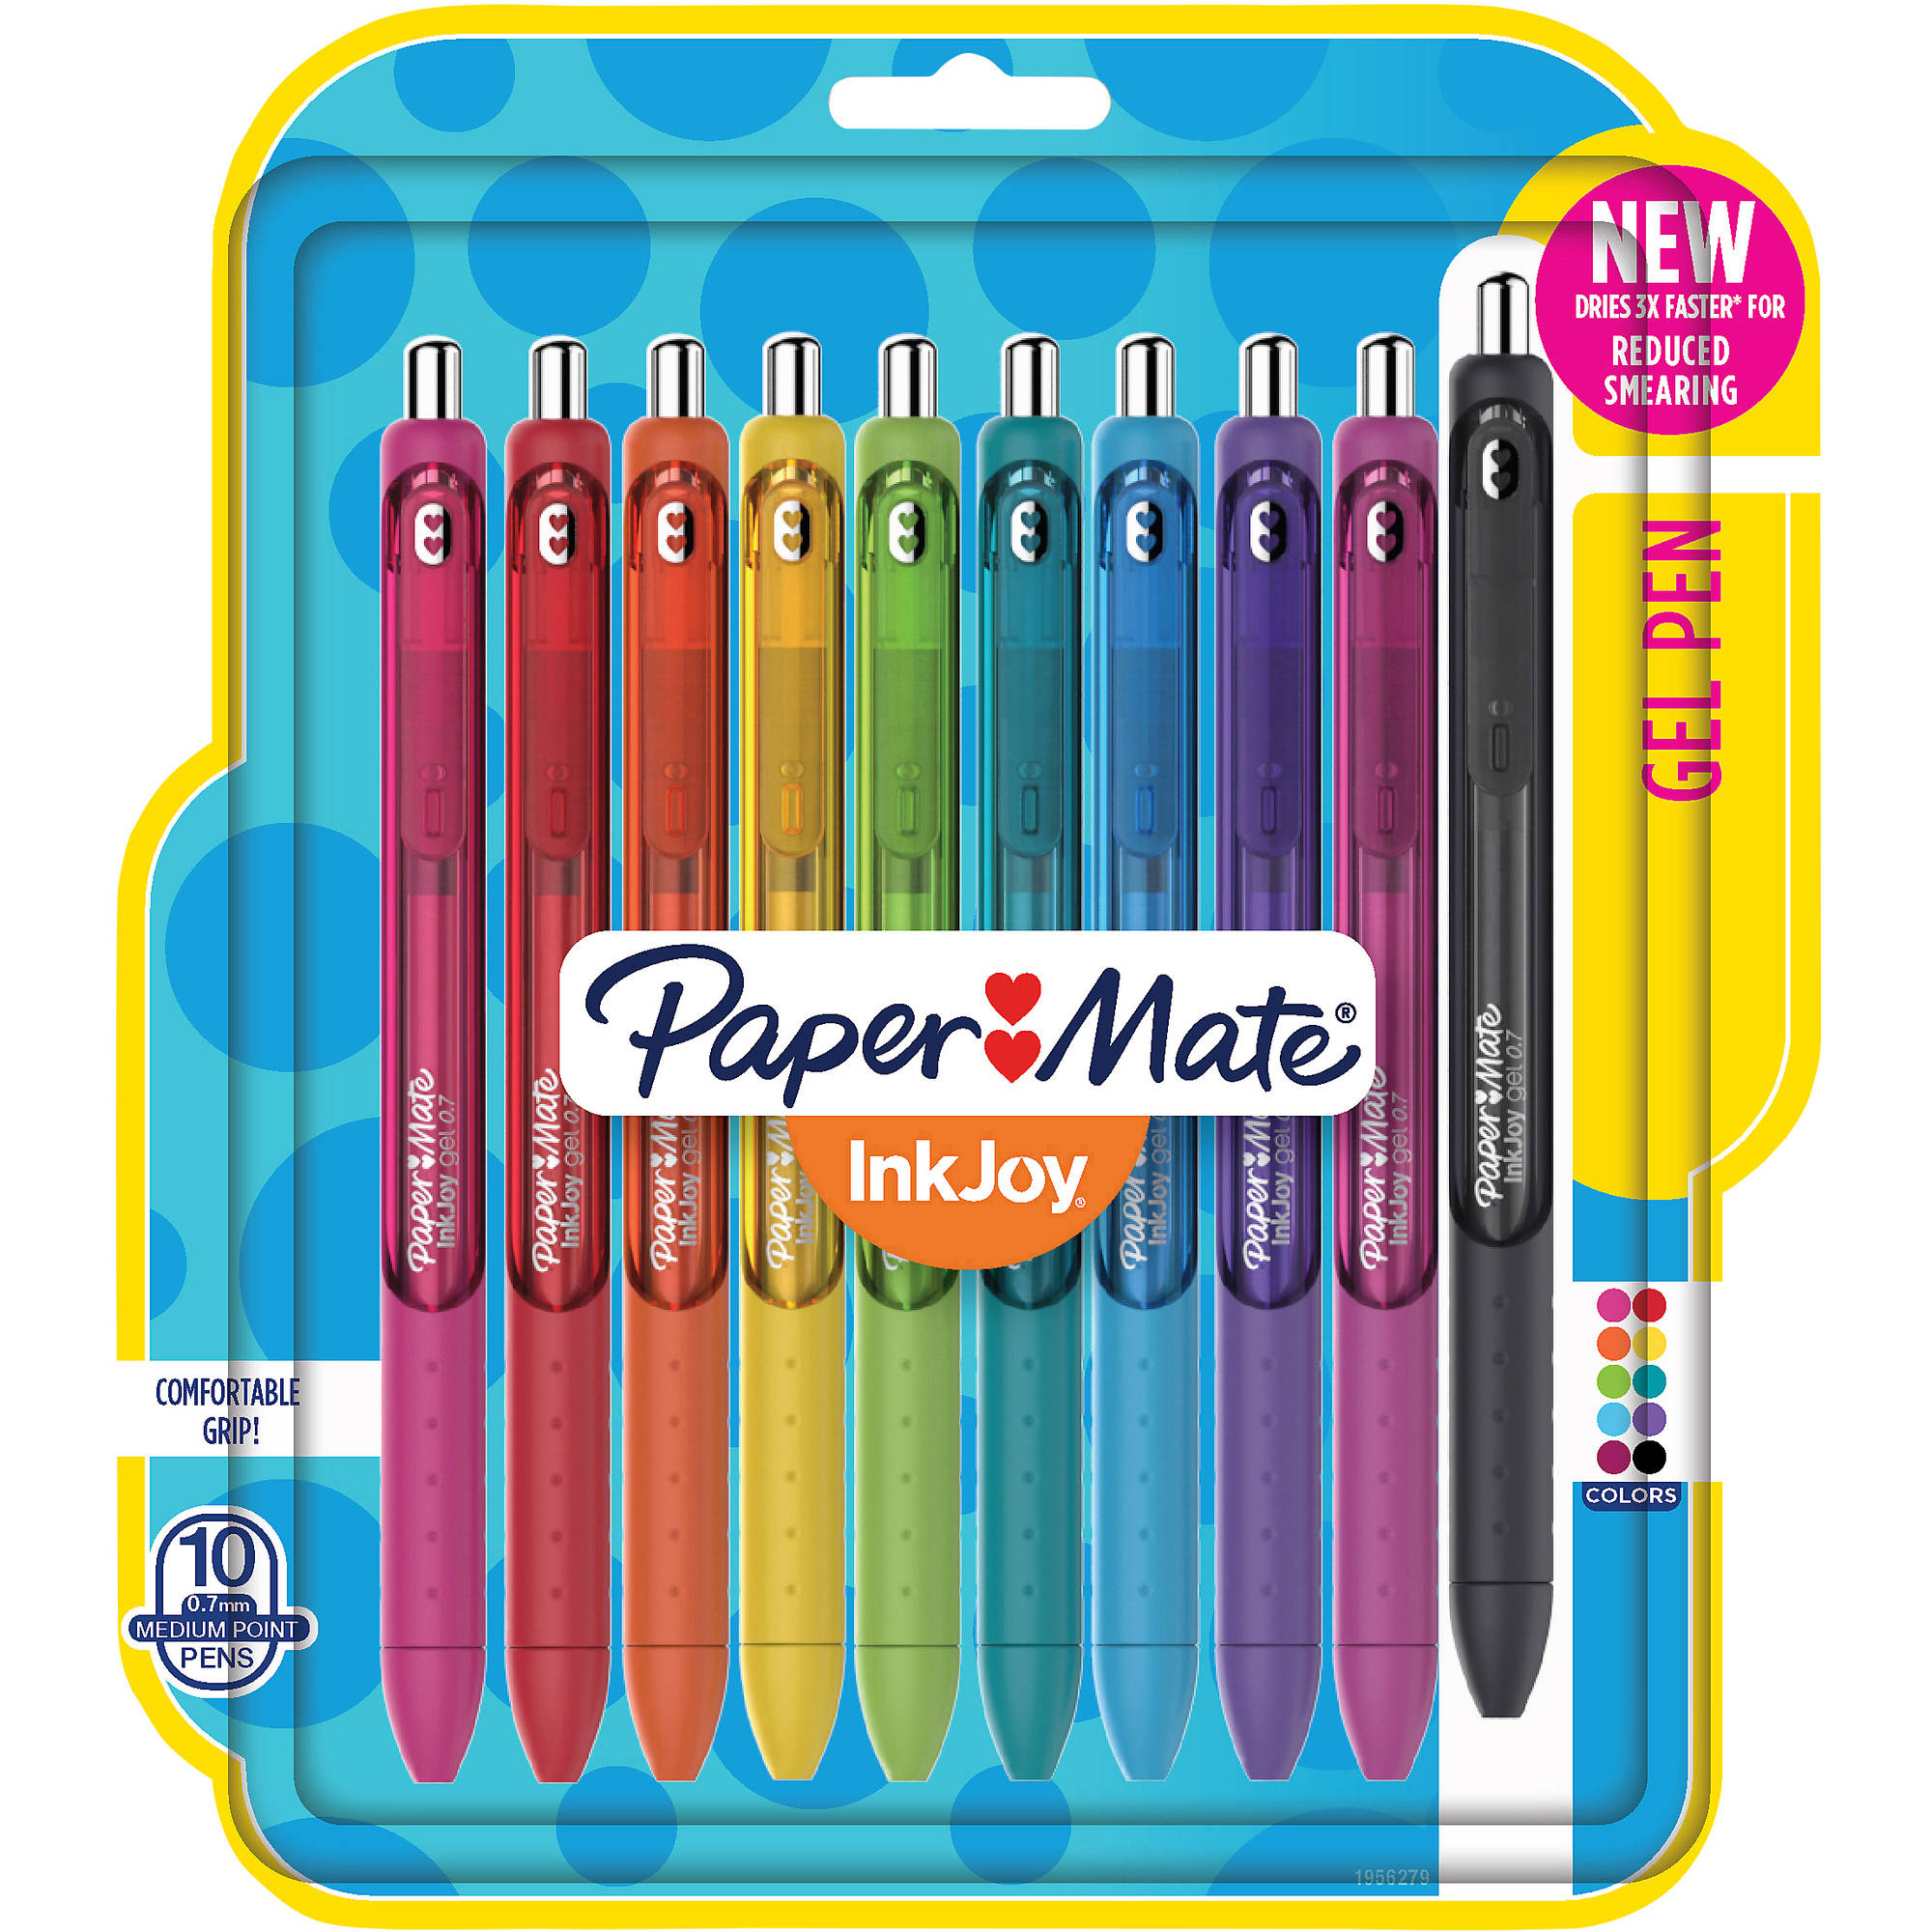 Paper Mate InkJoy Gel Pens, Medium Point, Assorted